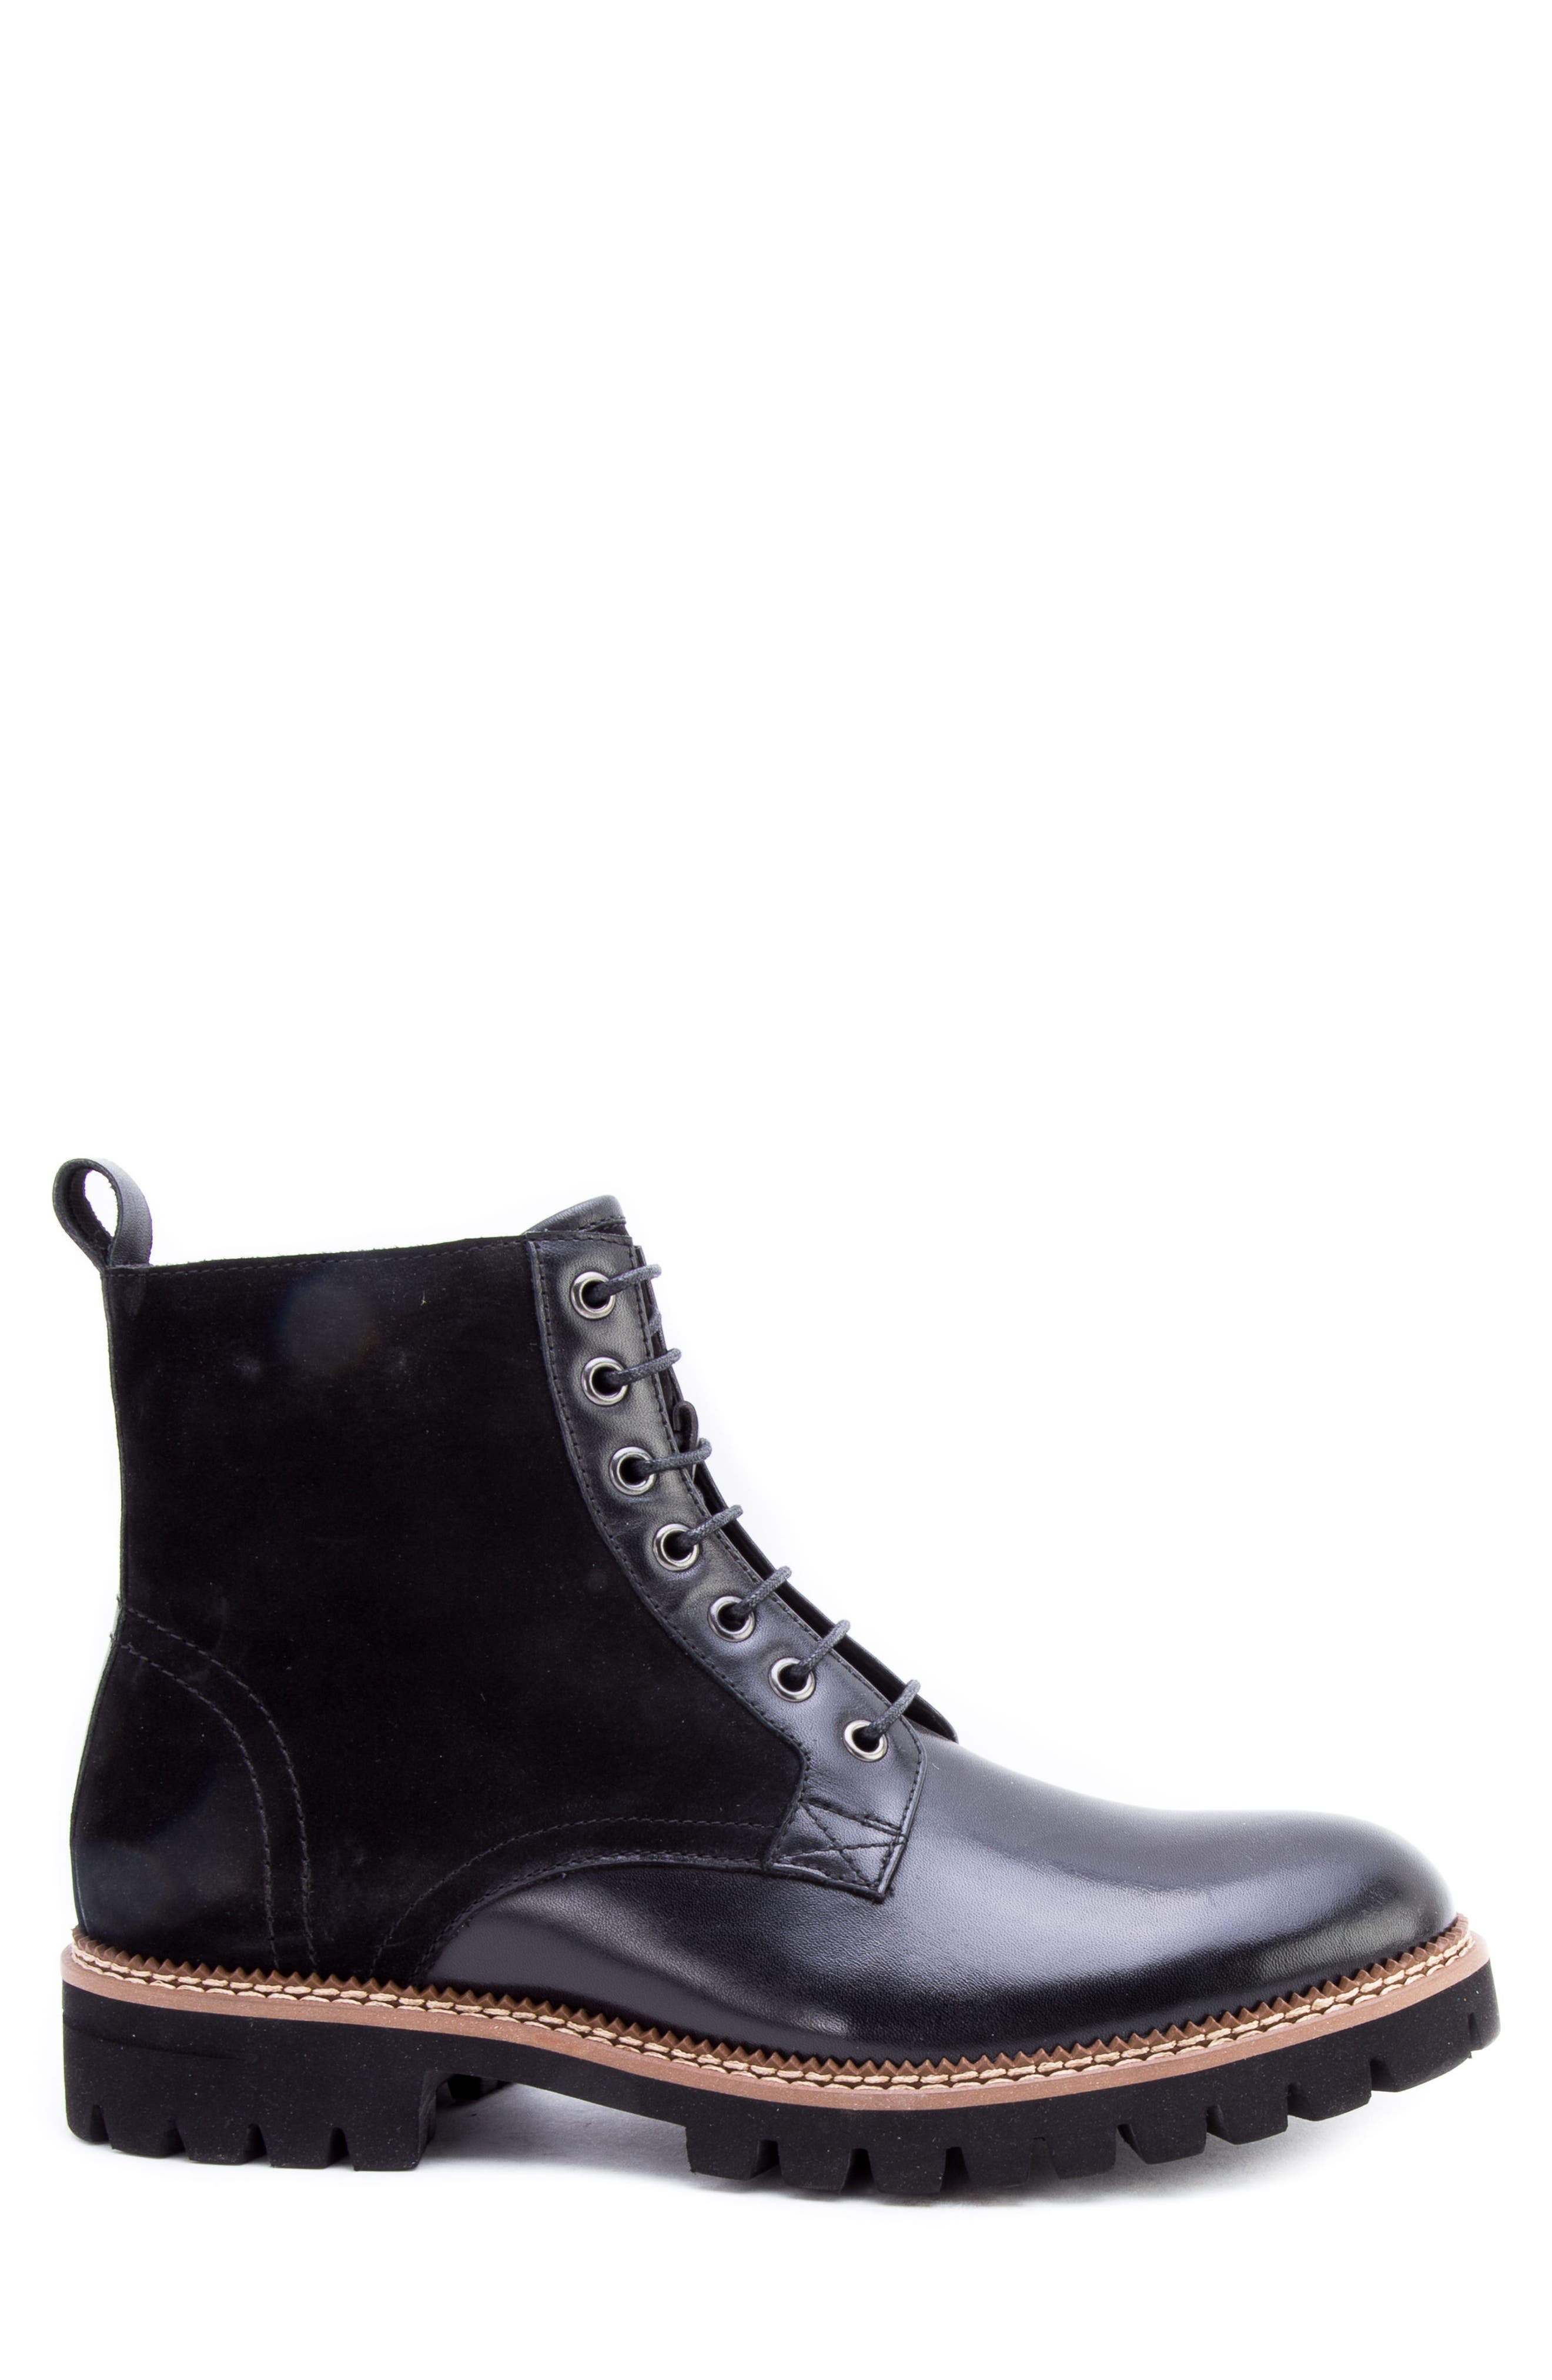 Millet Water Resistant Lugged Boot,                             Alternate thumbnail 3, color,                             BLACK LEATHER